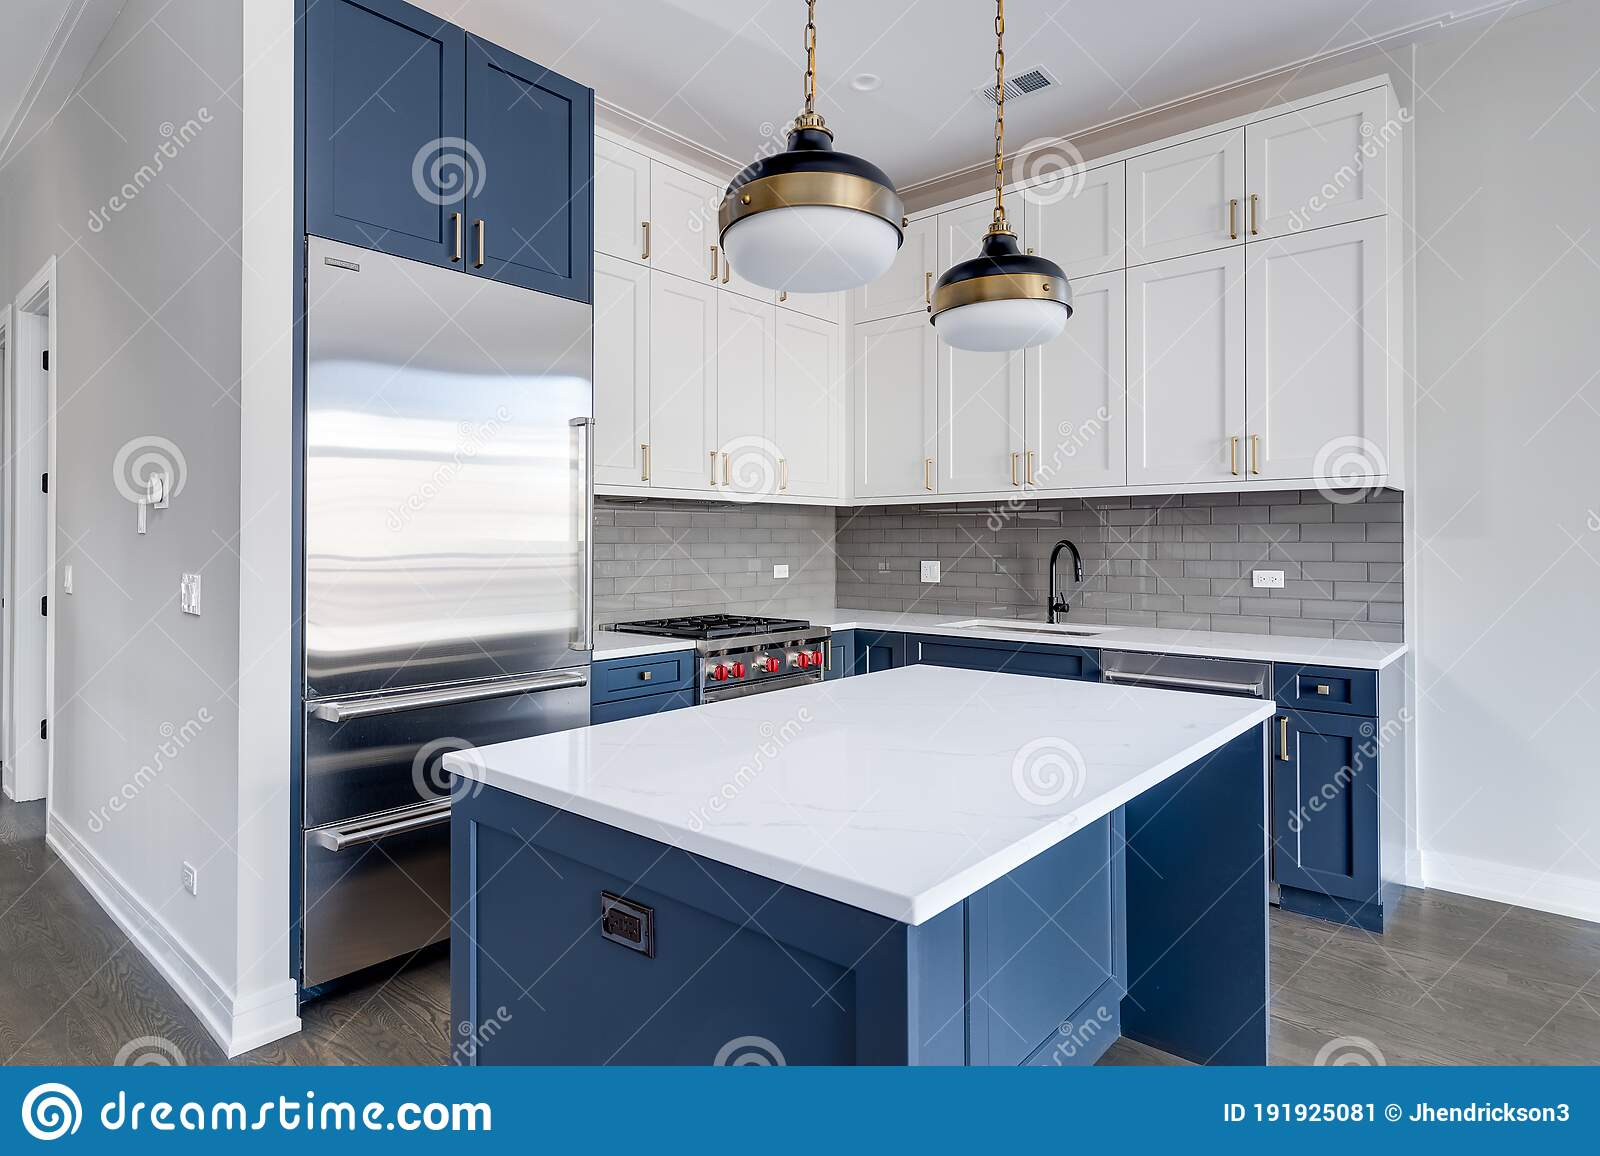 A Modern Kitchen With Blue And White Cabinets Editorial Photo Image Of Granite Elegant 191925081